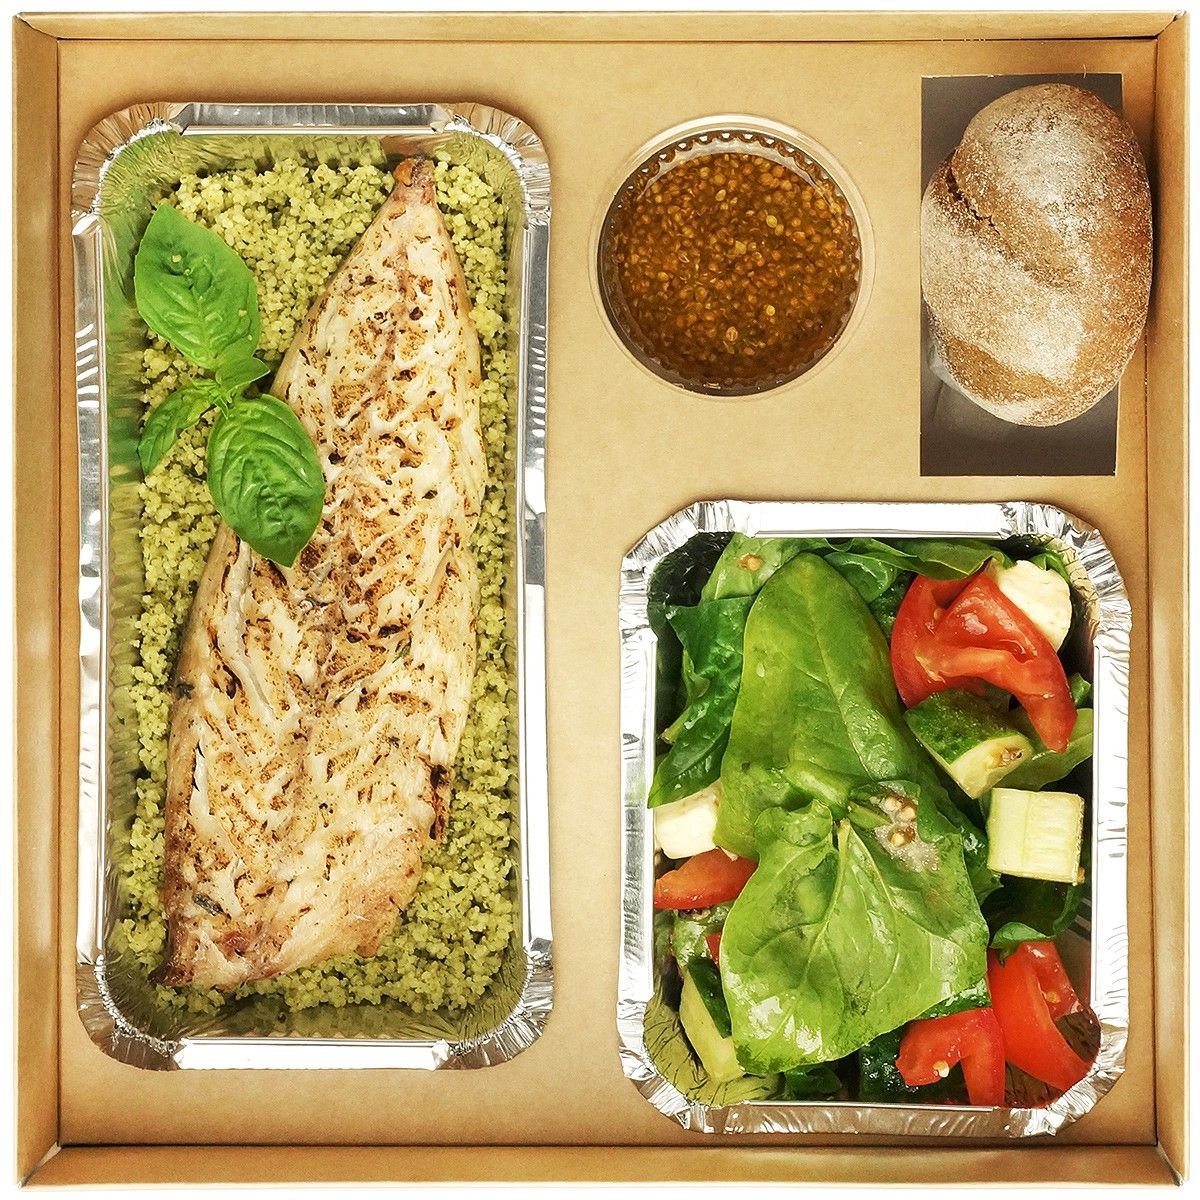 Fish lunch box: 350 грн. фото 4